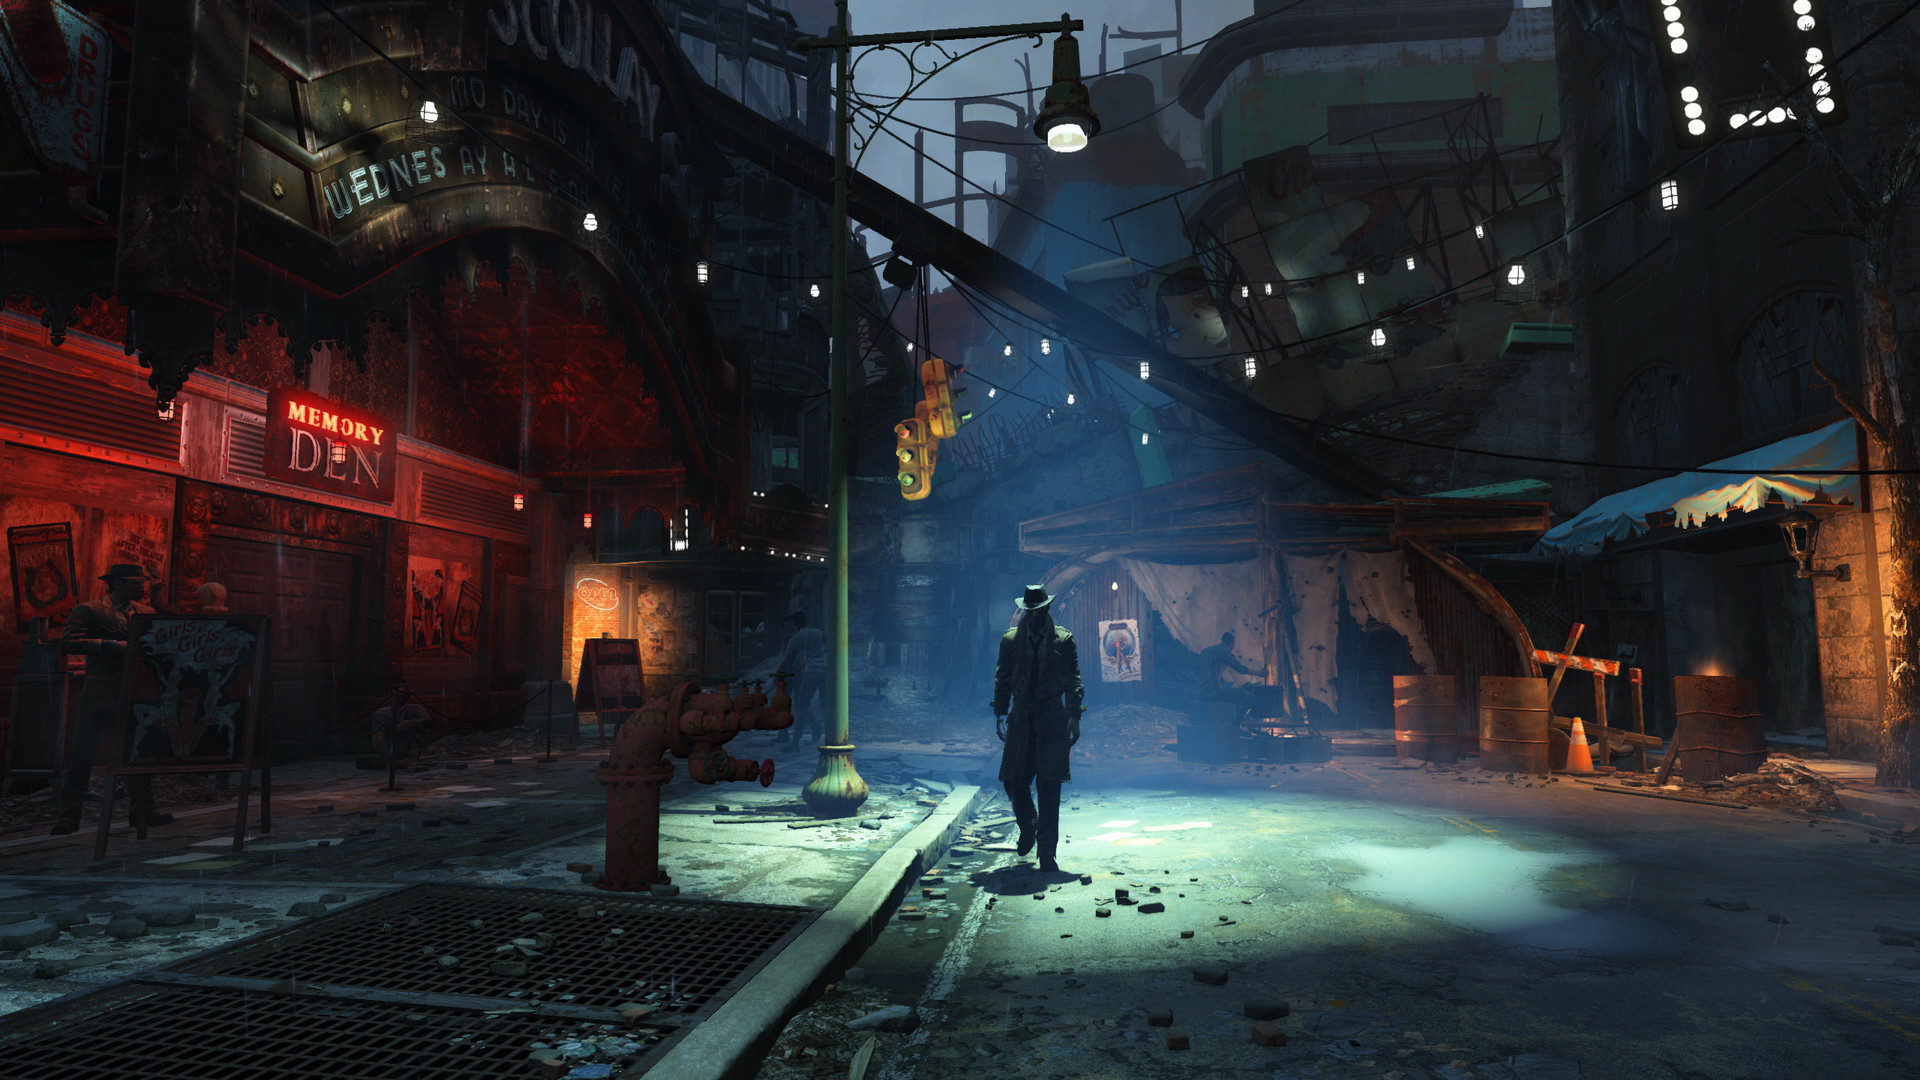 download fallout 4 complete edition season pass singlelink iso rar cracked by codex reloaded prophet plaza cpy gog games release multi language full version free for pc 2017 gratis